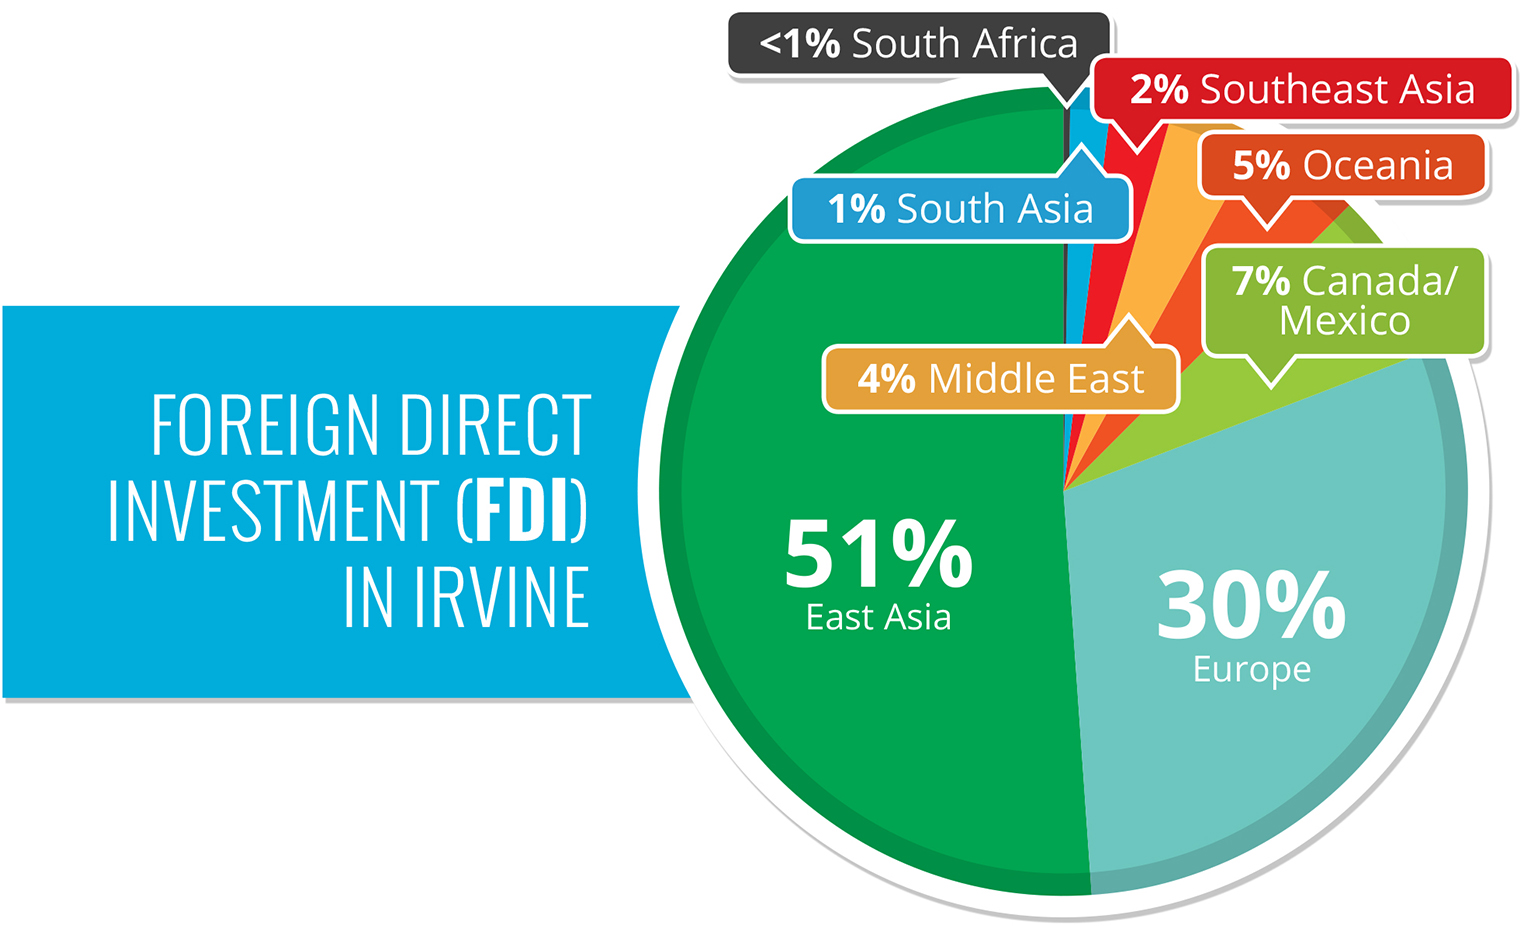 Foreign Direct Investment in Irvine chart